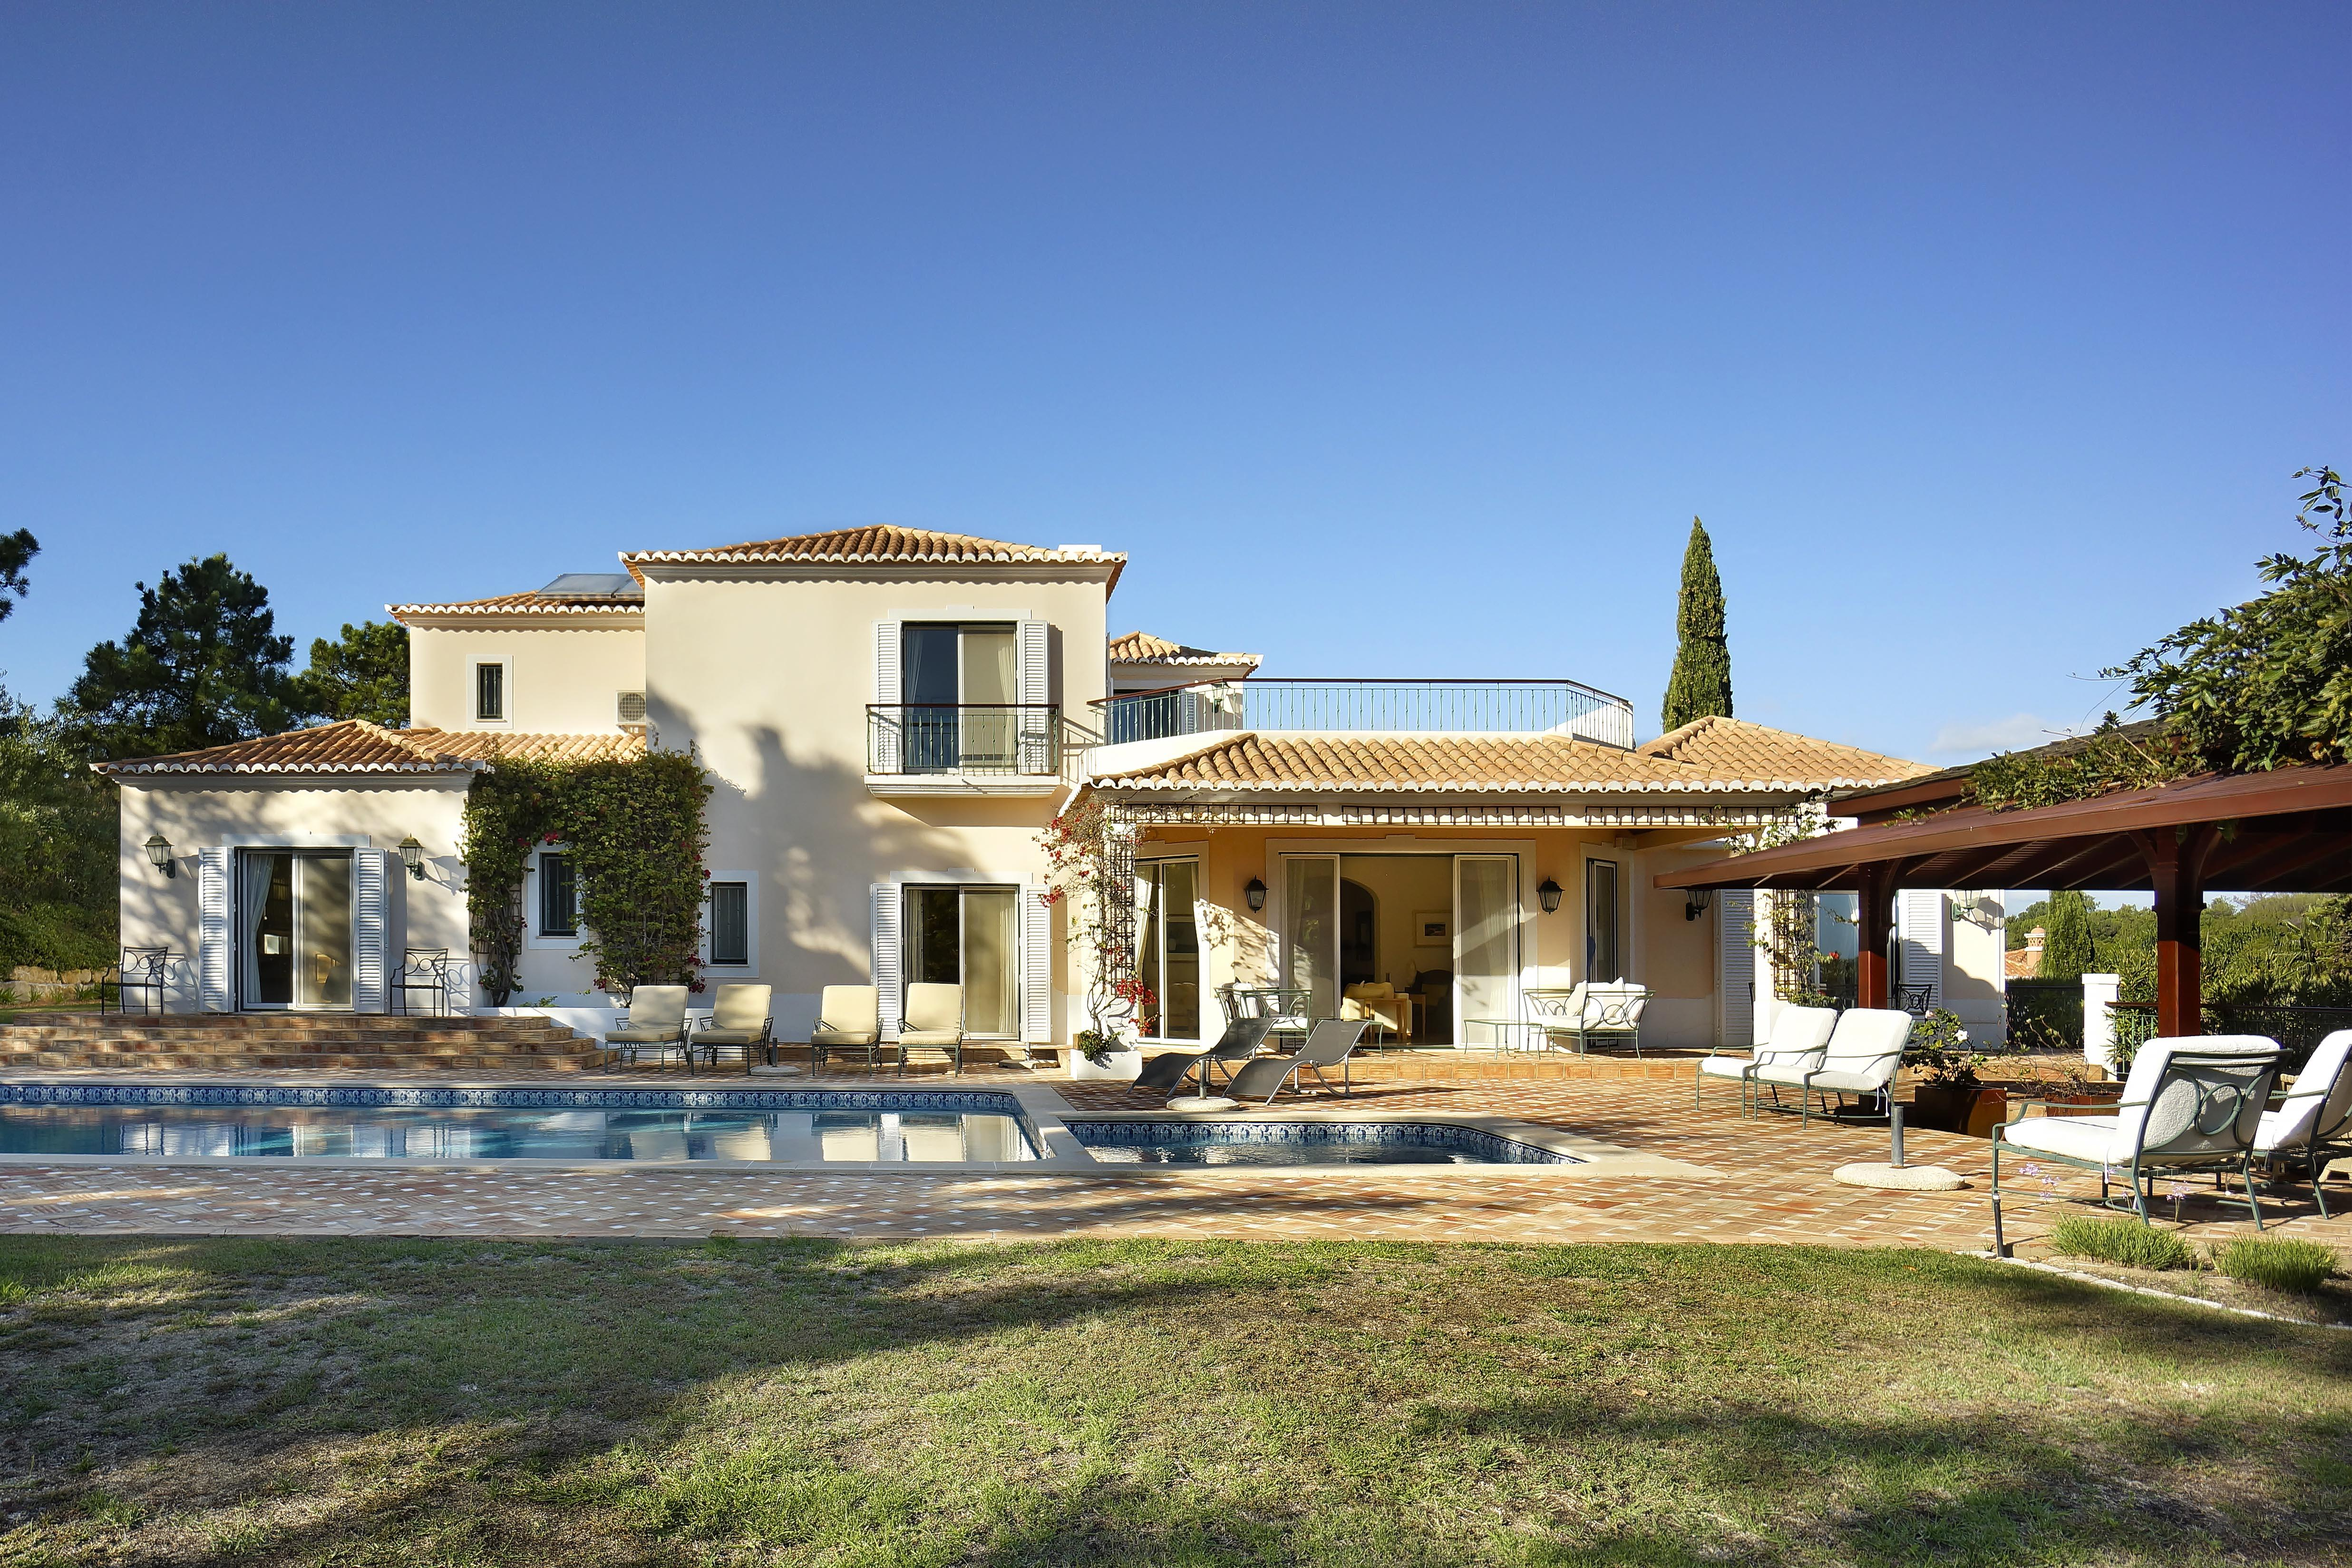 Casa Unifamiliar por un Venta en Detached house, 4 bedrooms, for Sale Loule, Algarve - Portugal